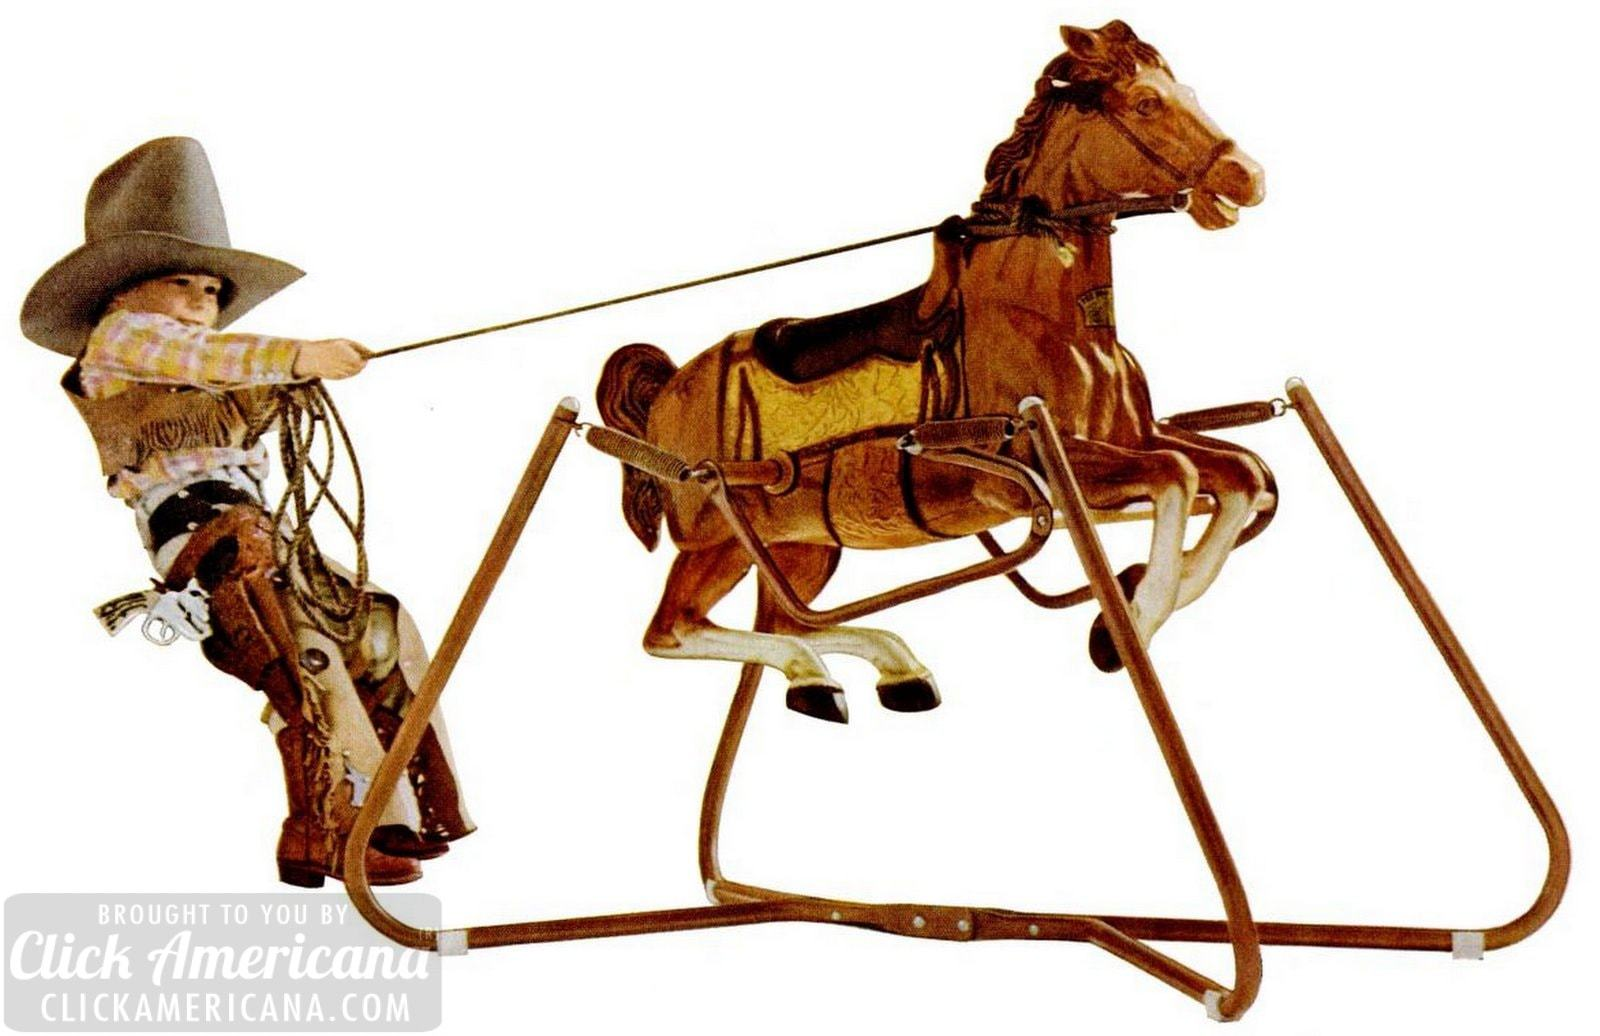 Wonder Horses See Vintage Ride On Spring Horse Toys From The 50s To The 80s Click Americana